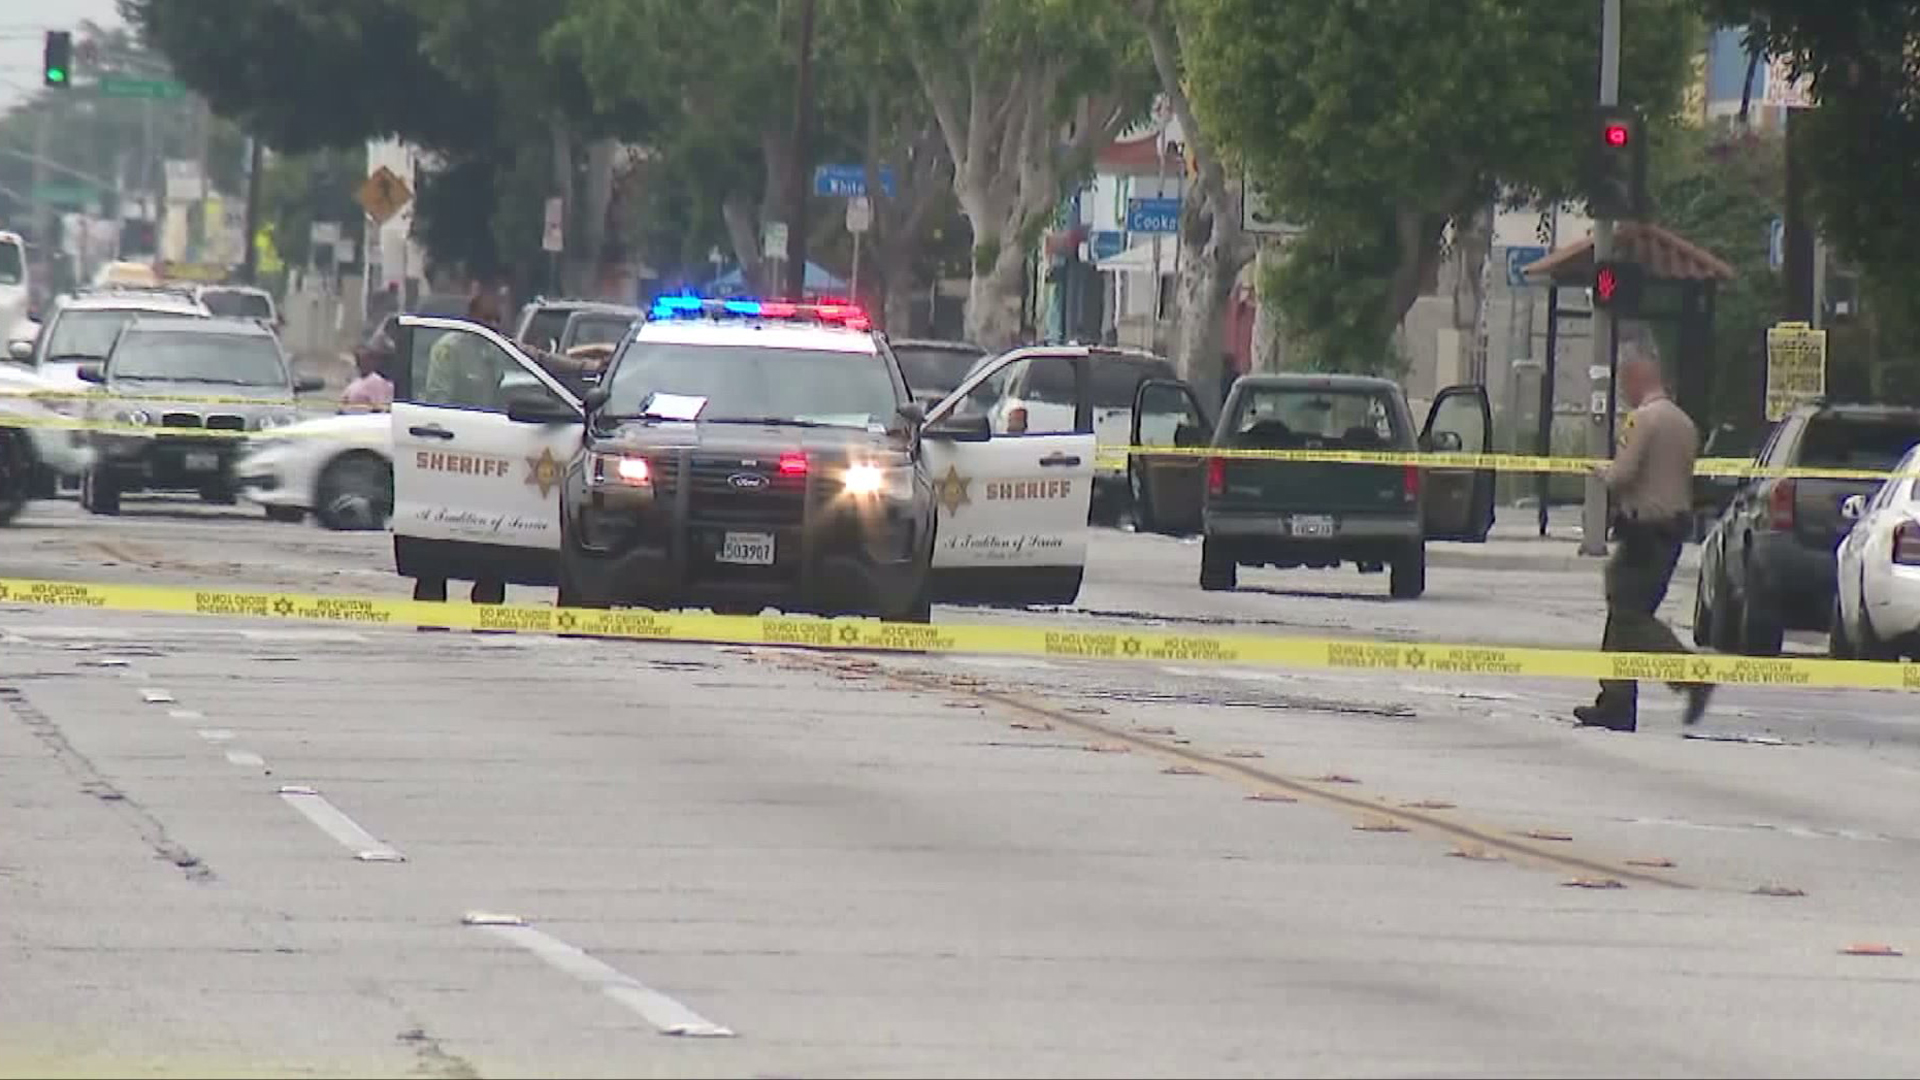 Deputies investigate the shooting of a young boy in East Compton on June 7, 2017. (Credit: KTLA)